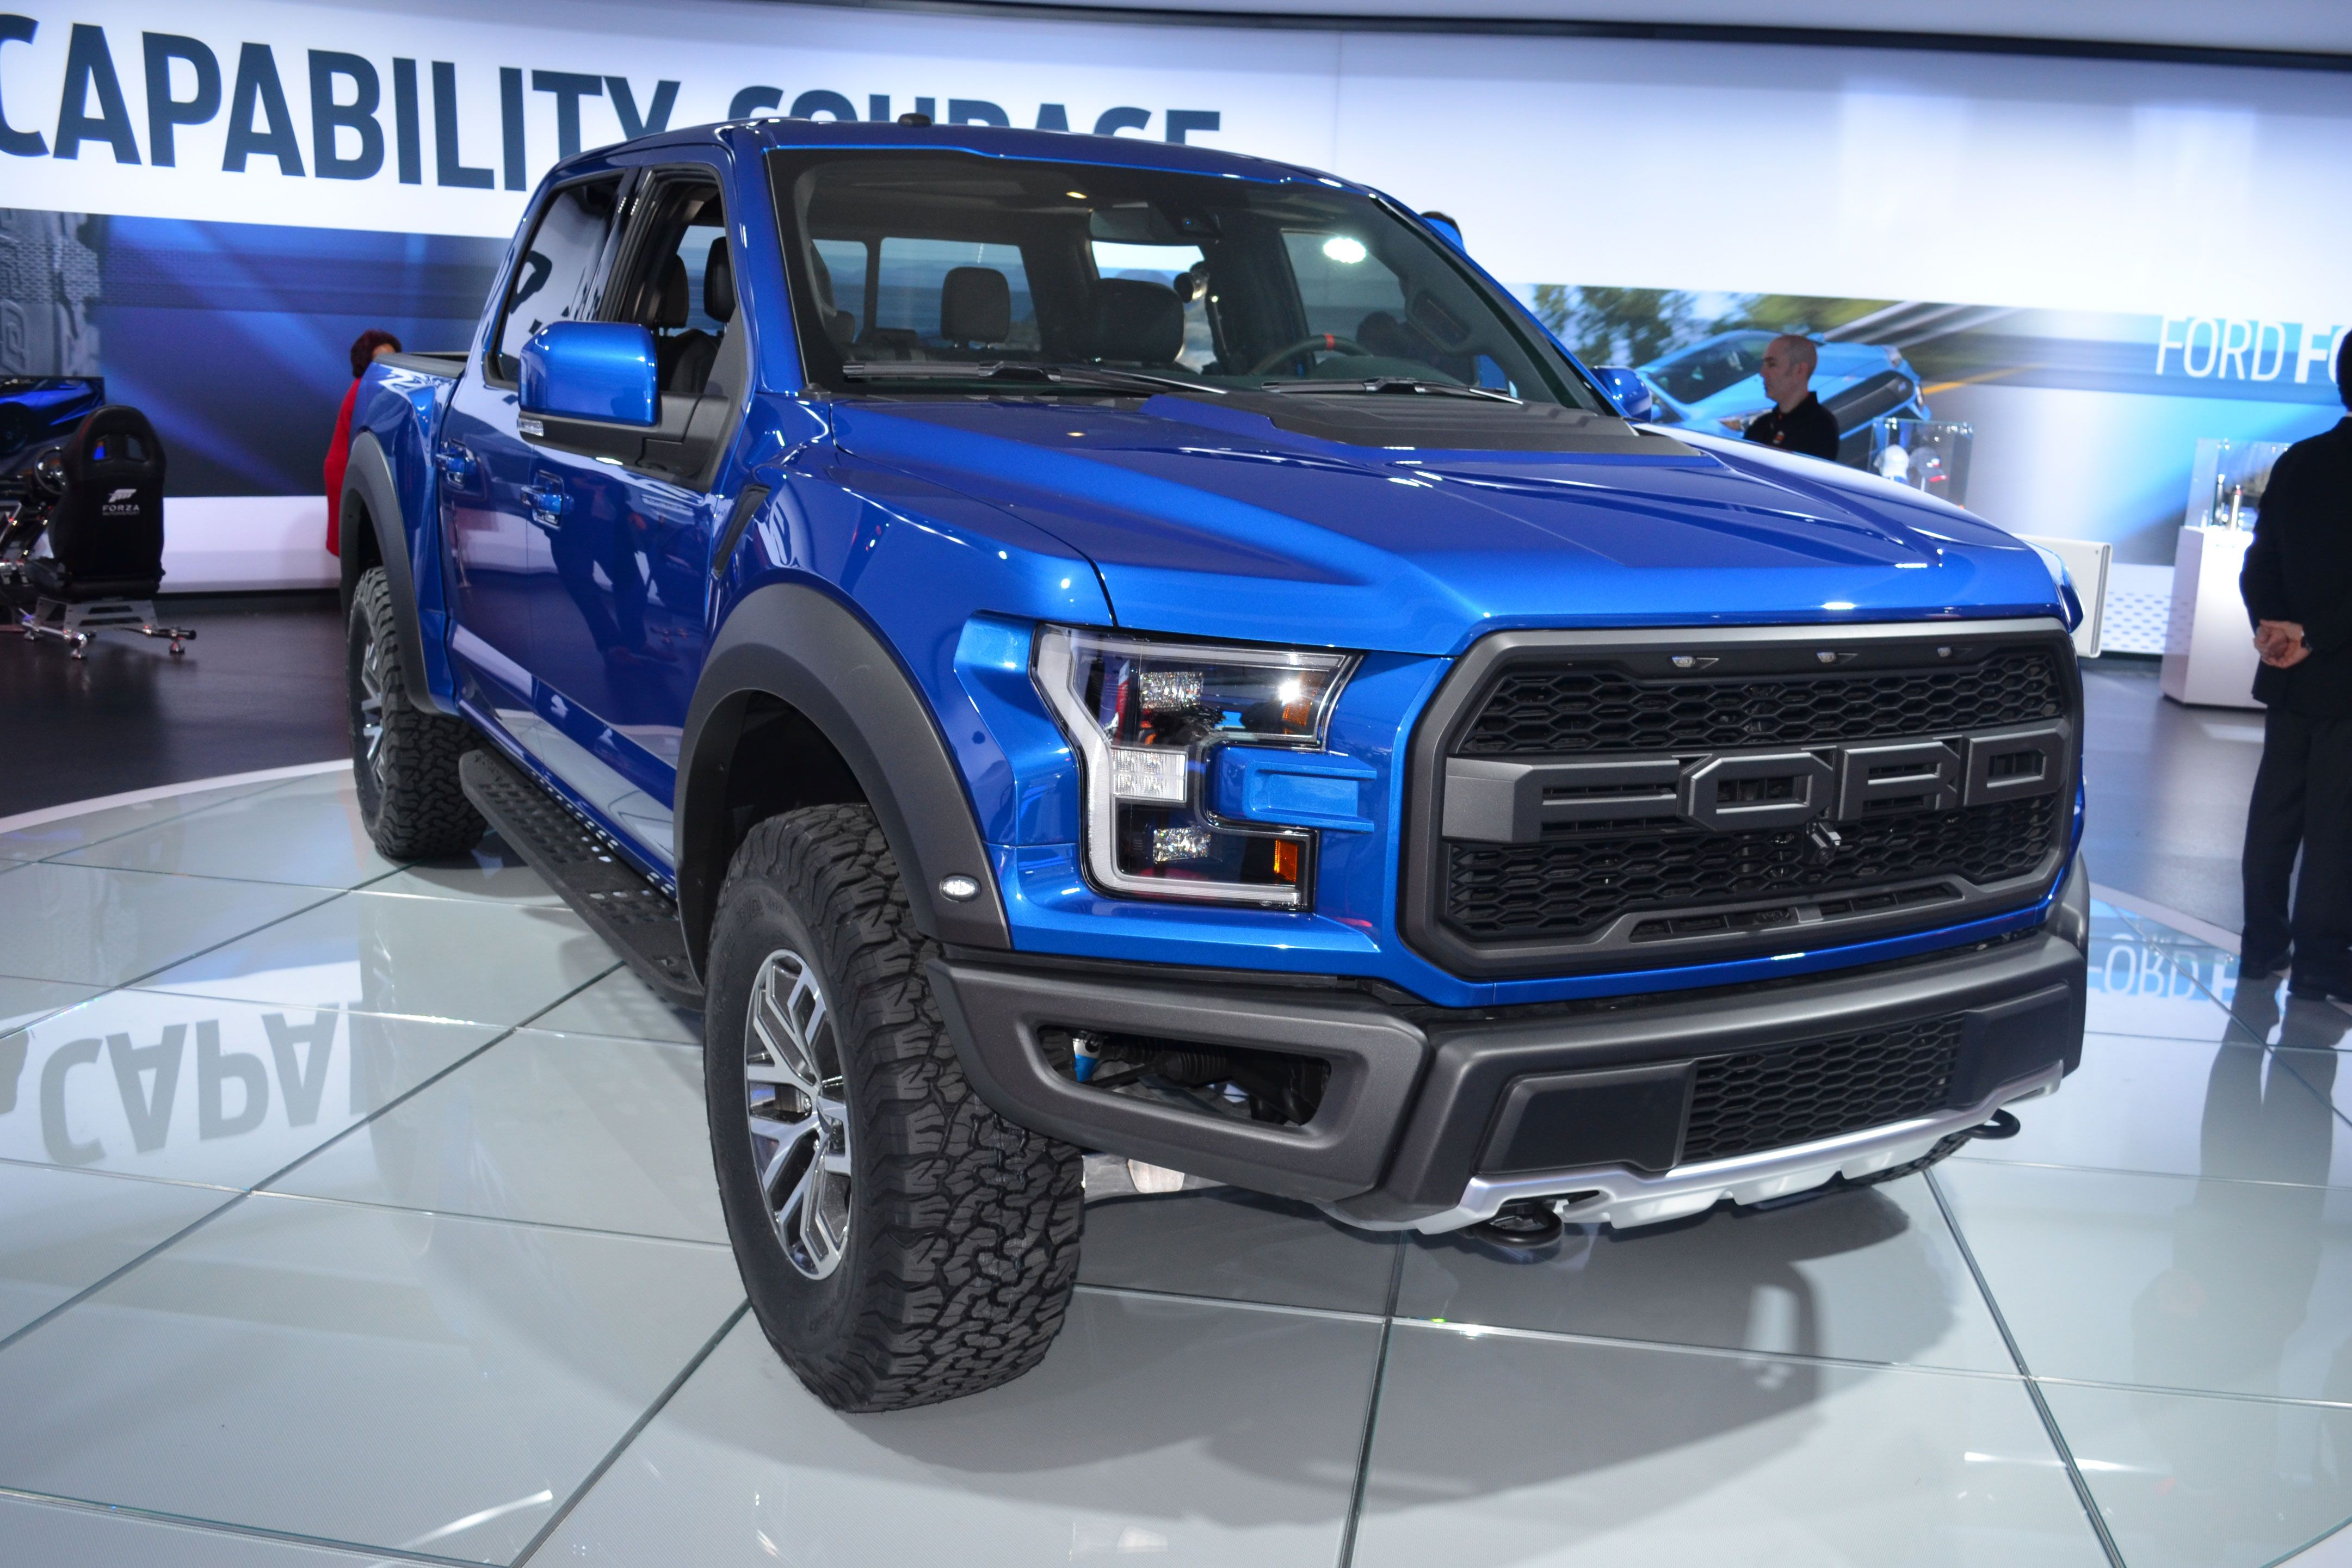 Ford F 150 Raptor Forum Claims 450 Hp 510 Lb Ft For 2017 Model